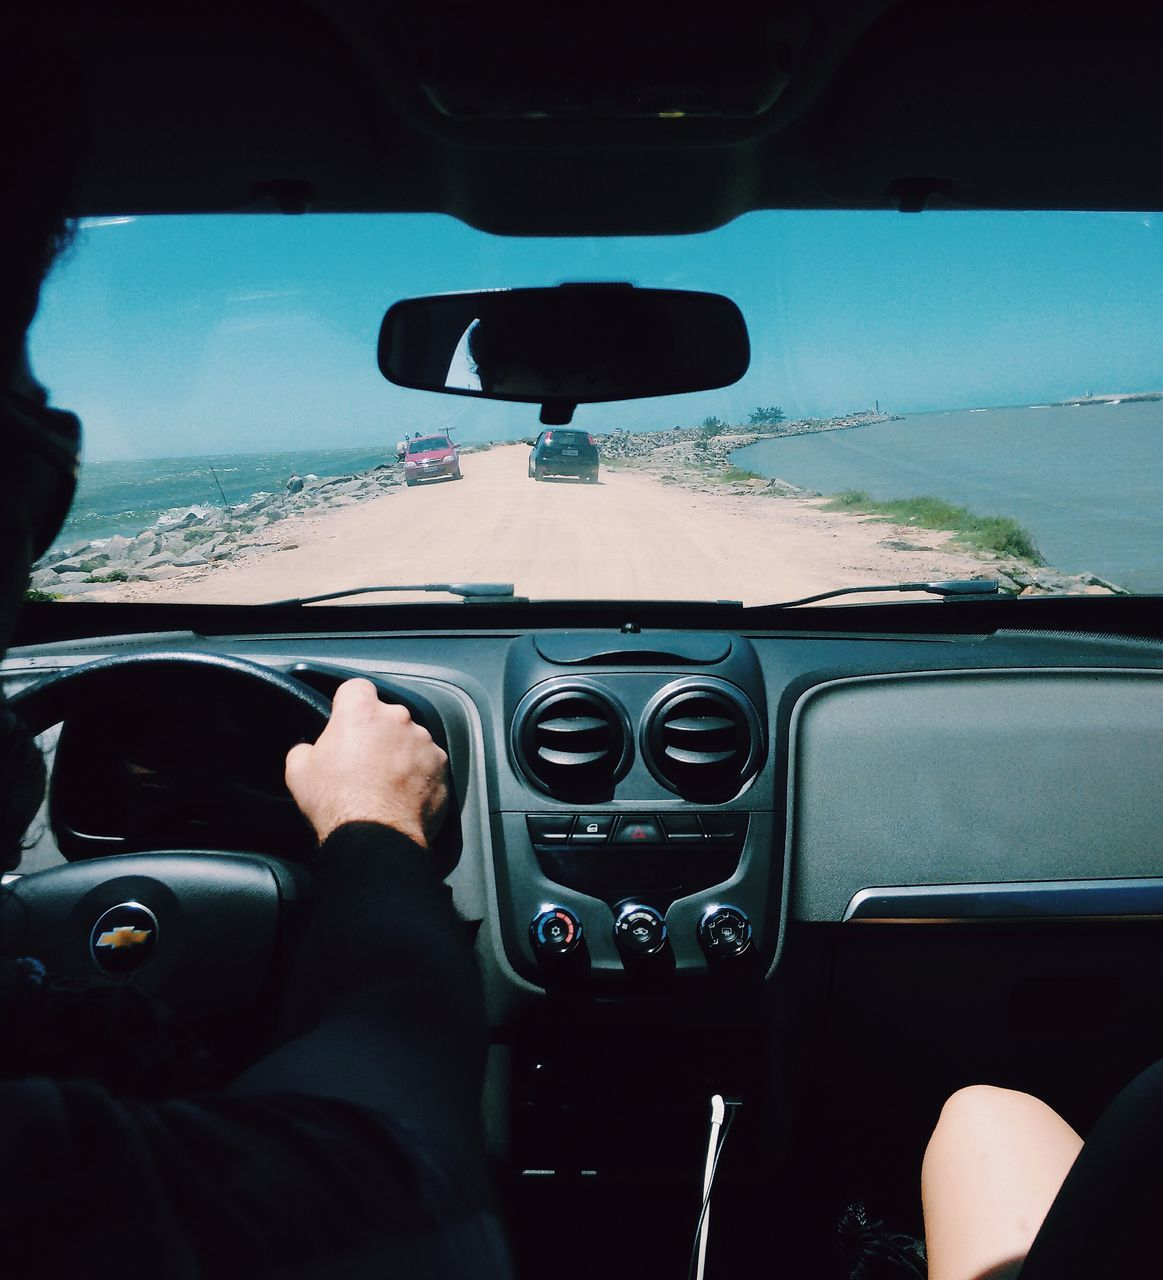 vehicle interior, car interior, car, transportation, steering wheel, one person, driving, real people, men, mode of transport, human hand, dashboard, land vehicle, day, human body part, windscreen, speedometer, close-up, outdoors, sky, people